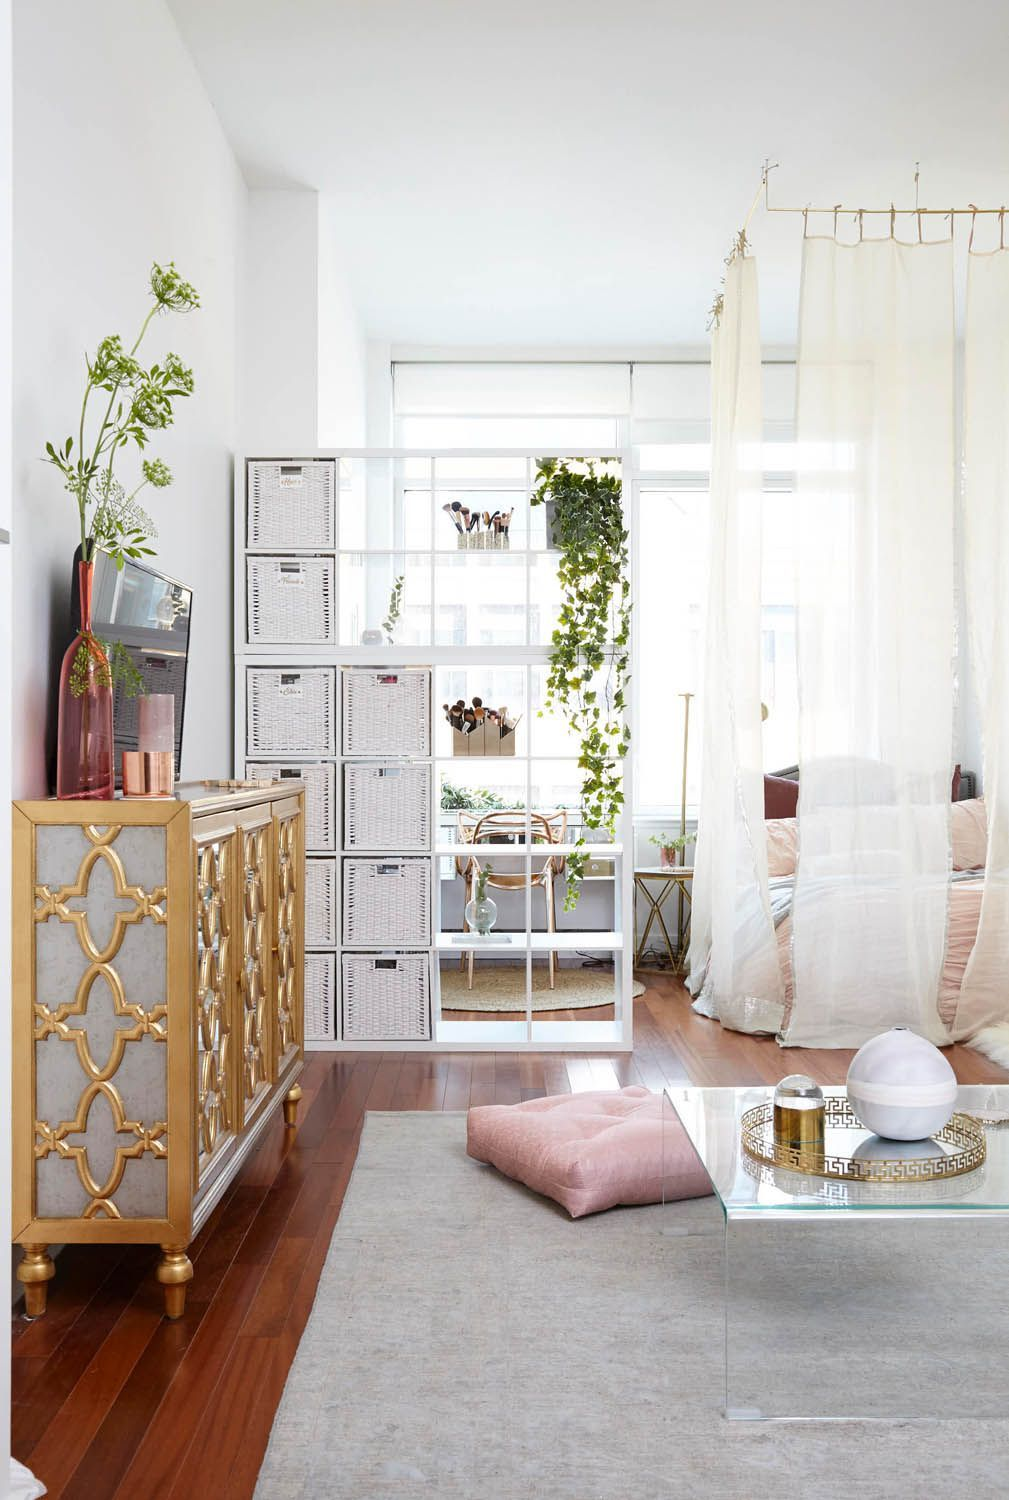 Maximizing A Small Space Homepolish Transforms Deepica Mutyala S